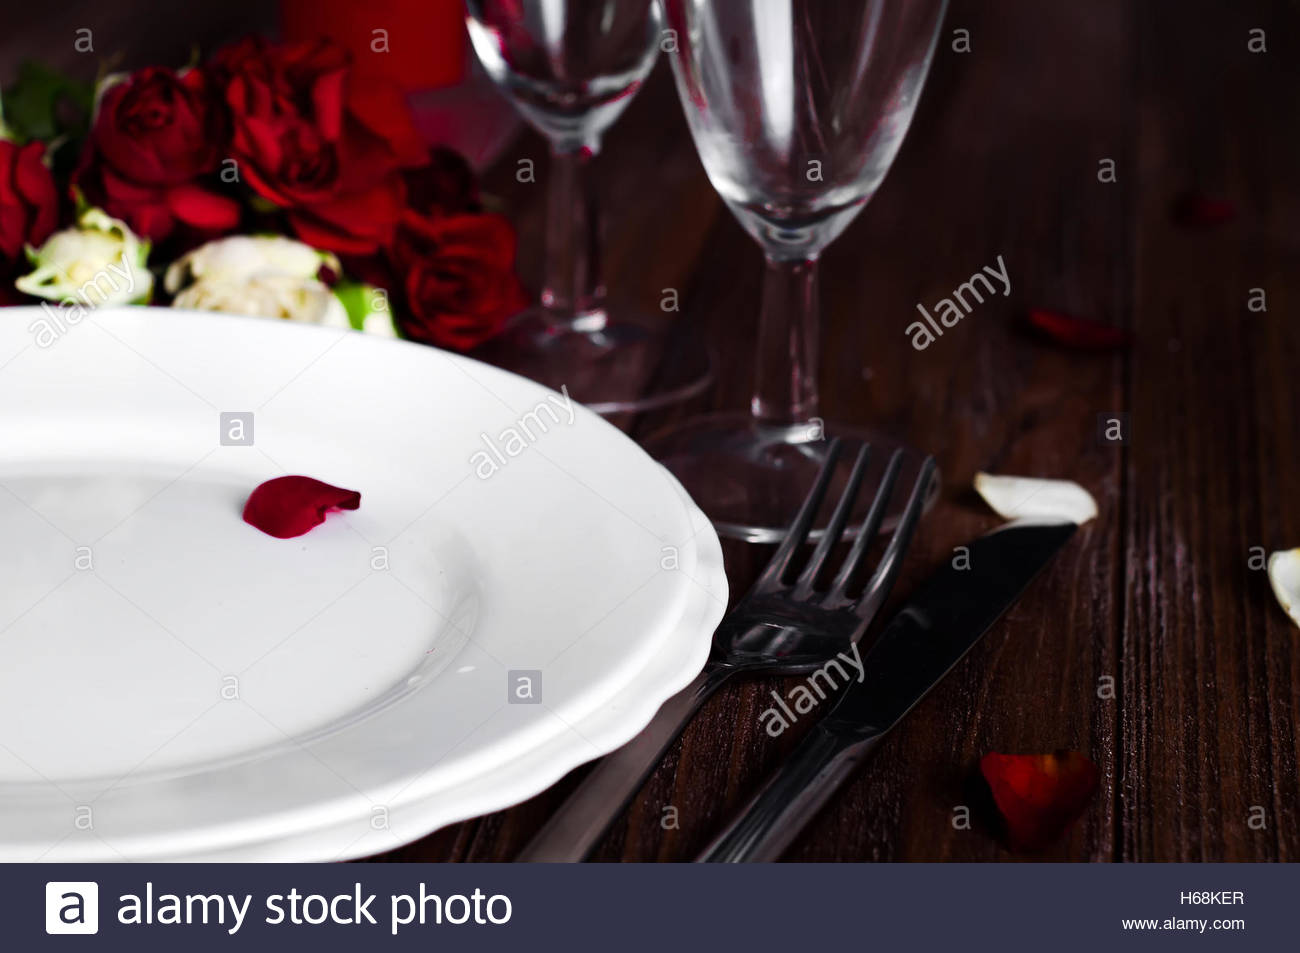 Dinner Table Background romantic valentine candle light dinner table setting with red